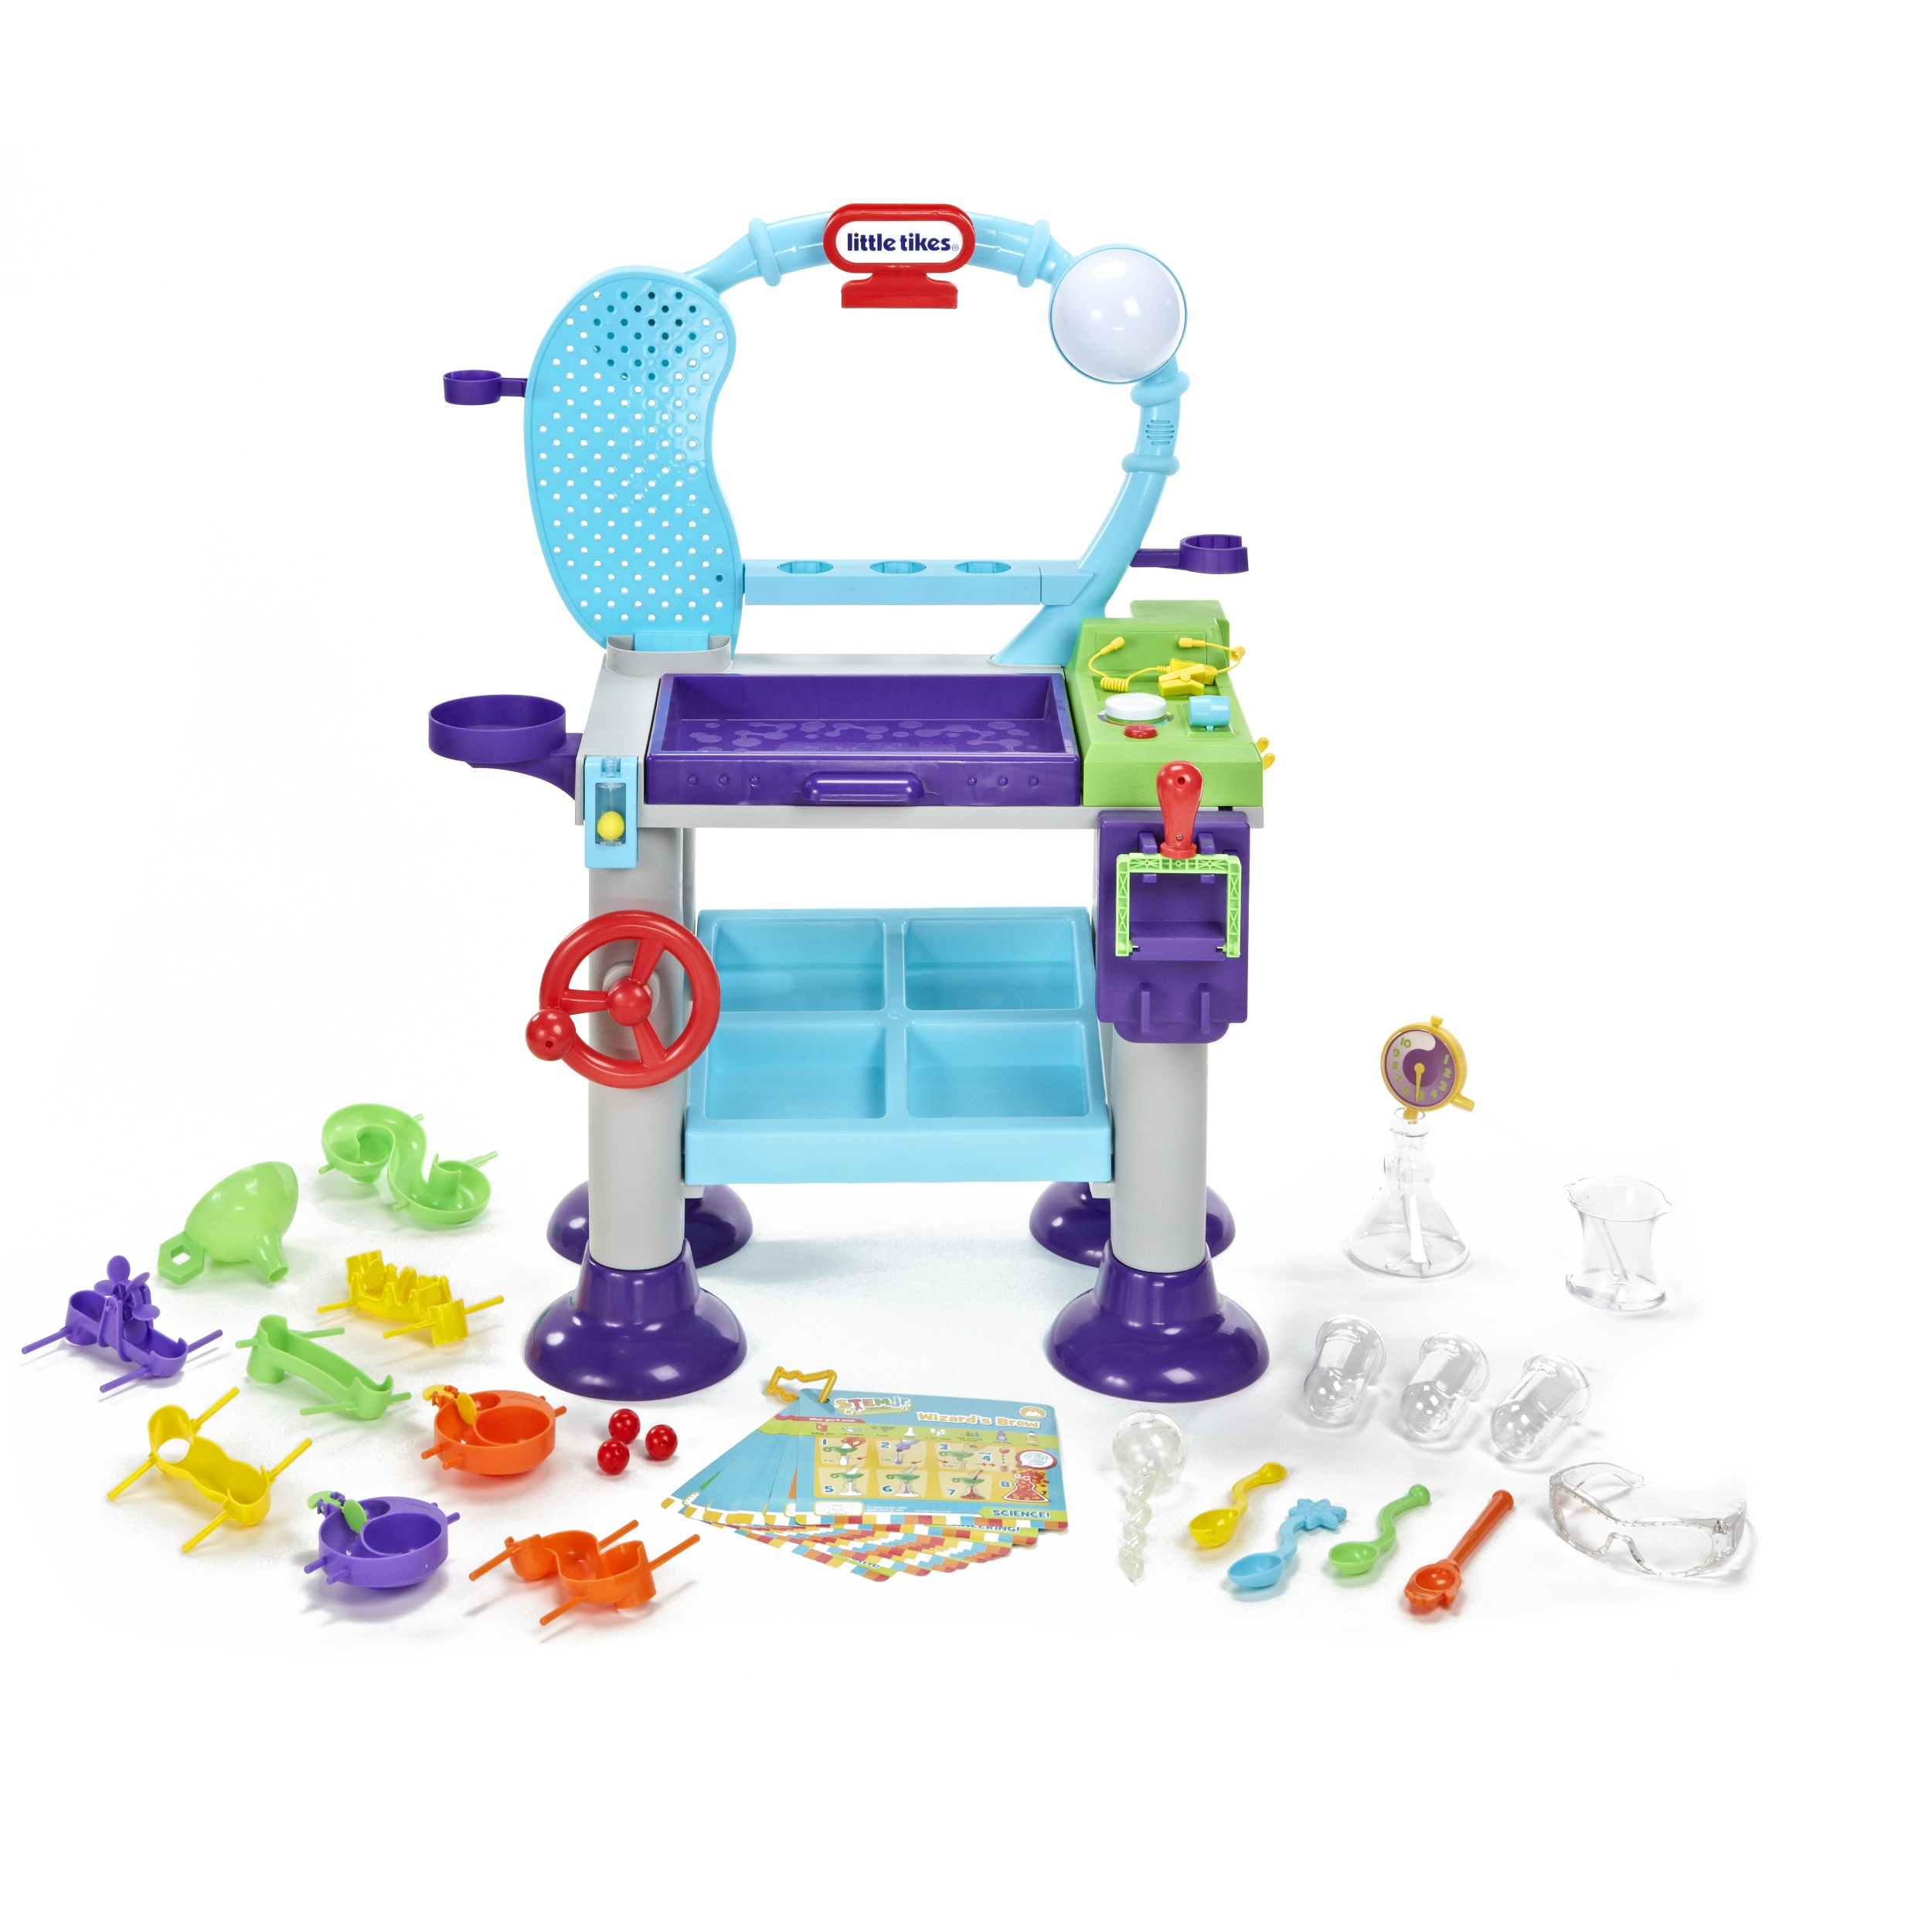 Little Tikes Wonder Lab - Walmart.com